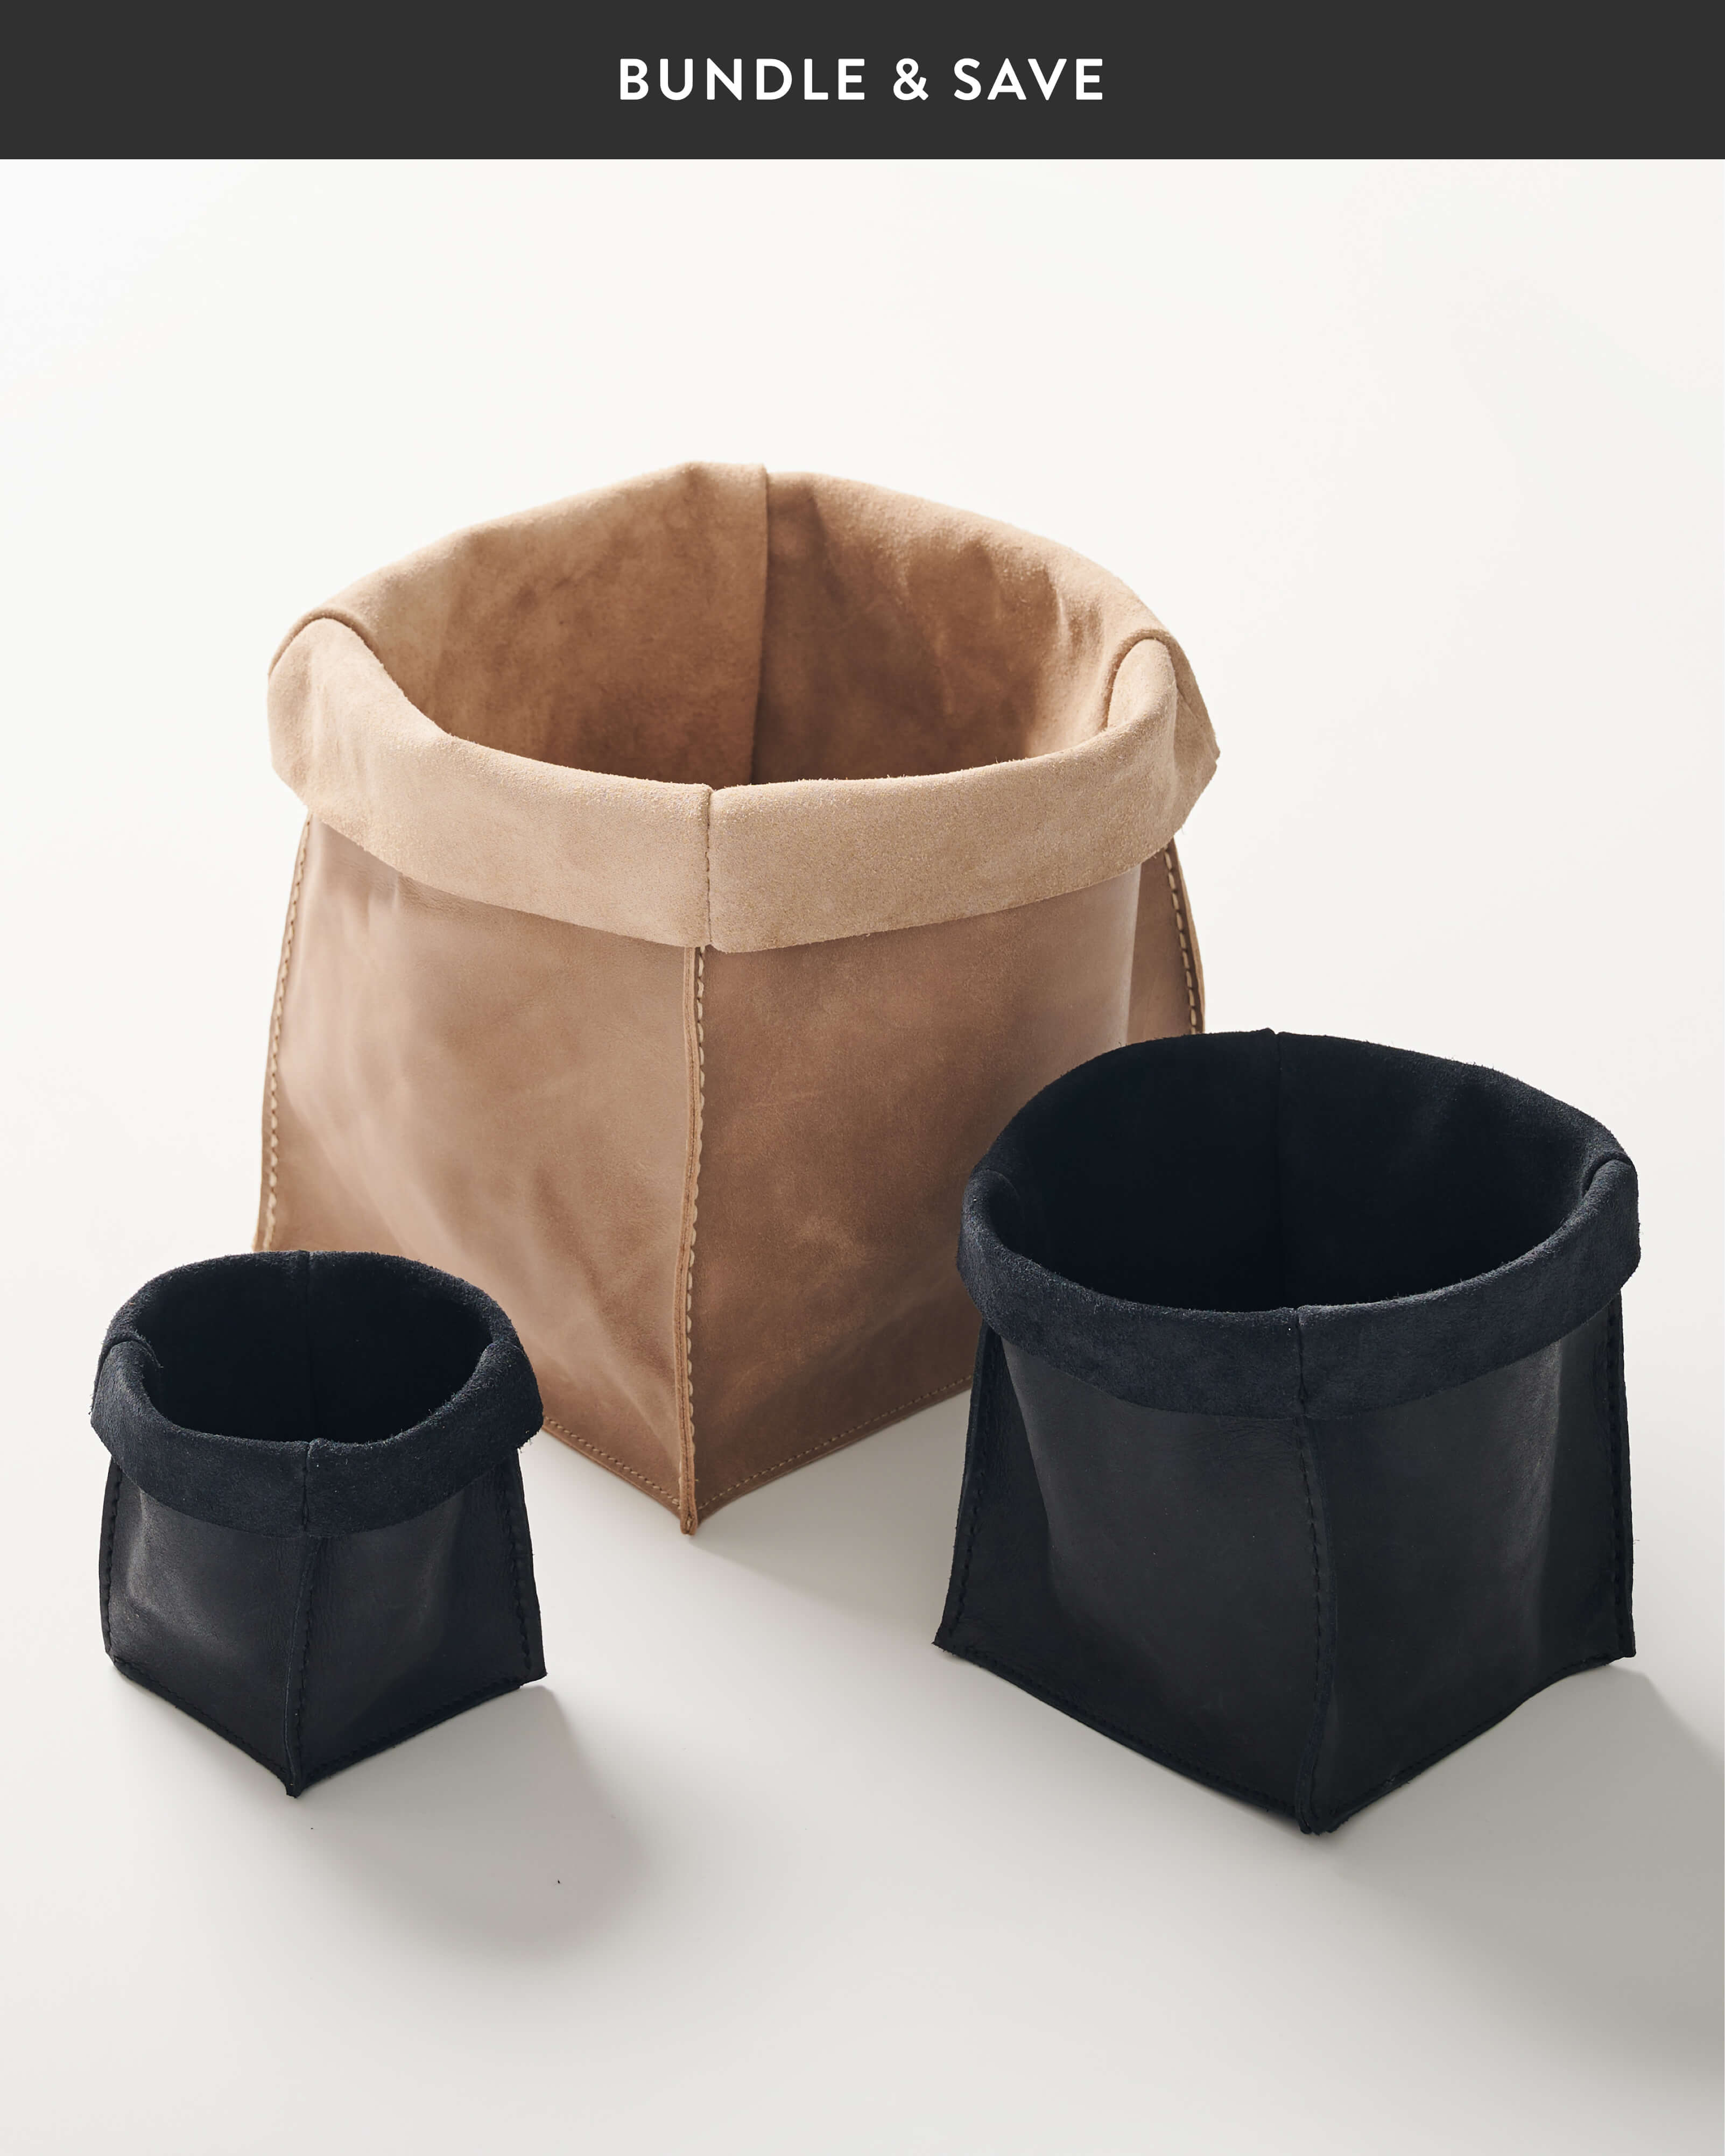 Roots-Leather Leather Accessories-Shop The Look: Home Accessories Bundle -4